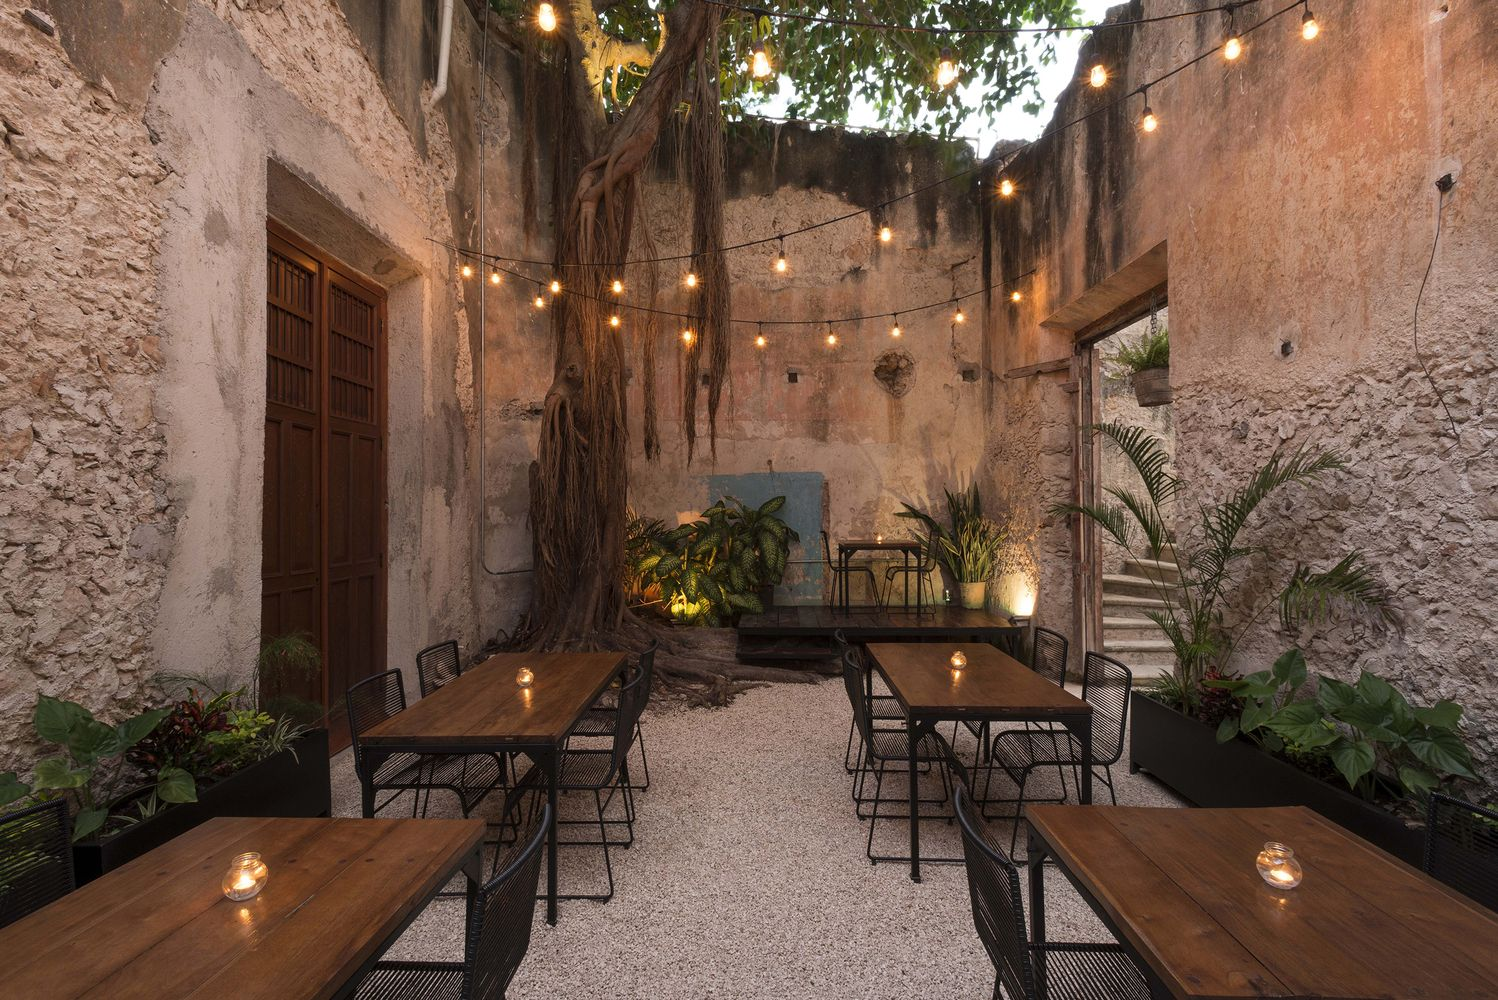 Garden Makeover Ruins Of A Colonial House Become A Garden Bar In Mexico Showit Blog Colonial House Exterior Design Garden Bar